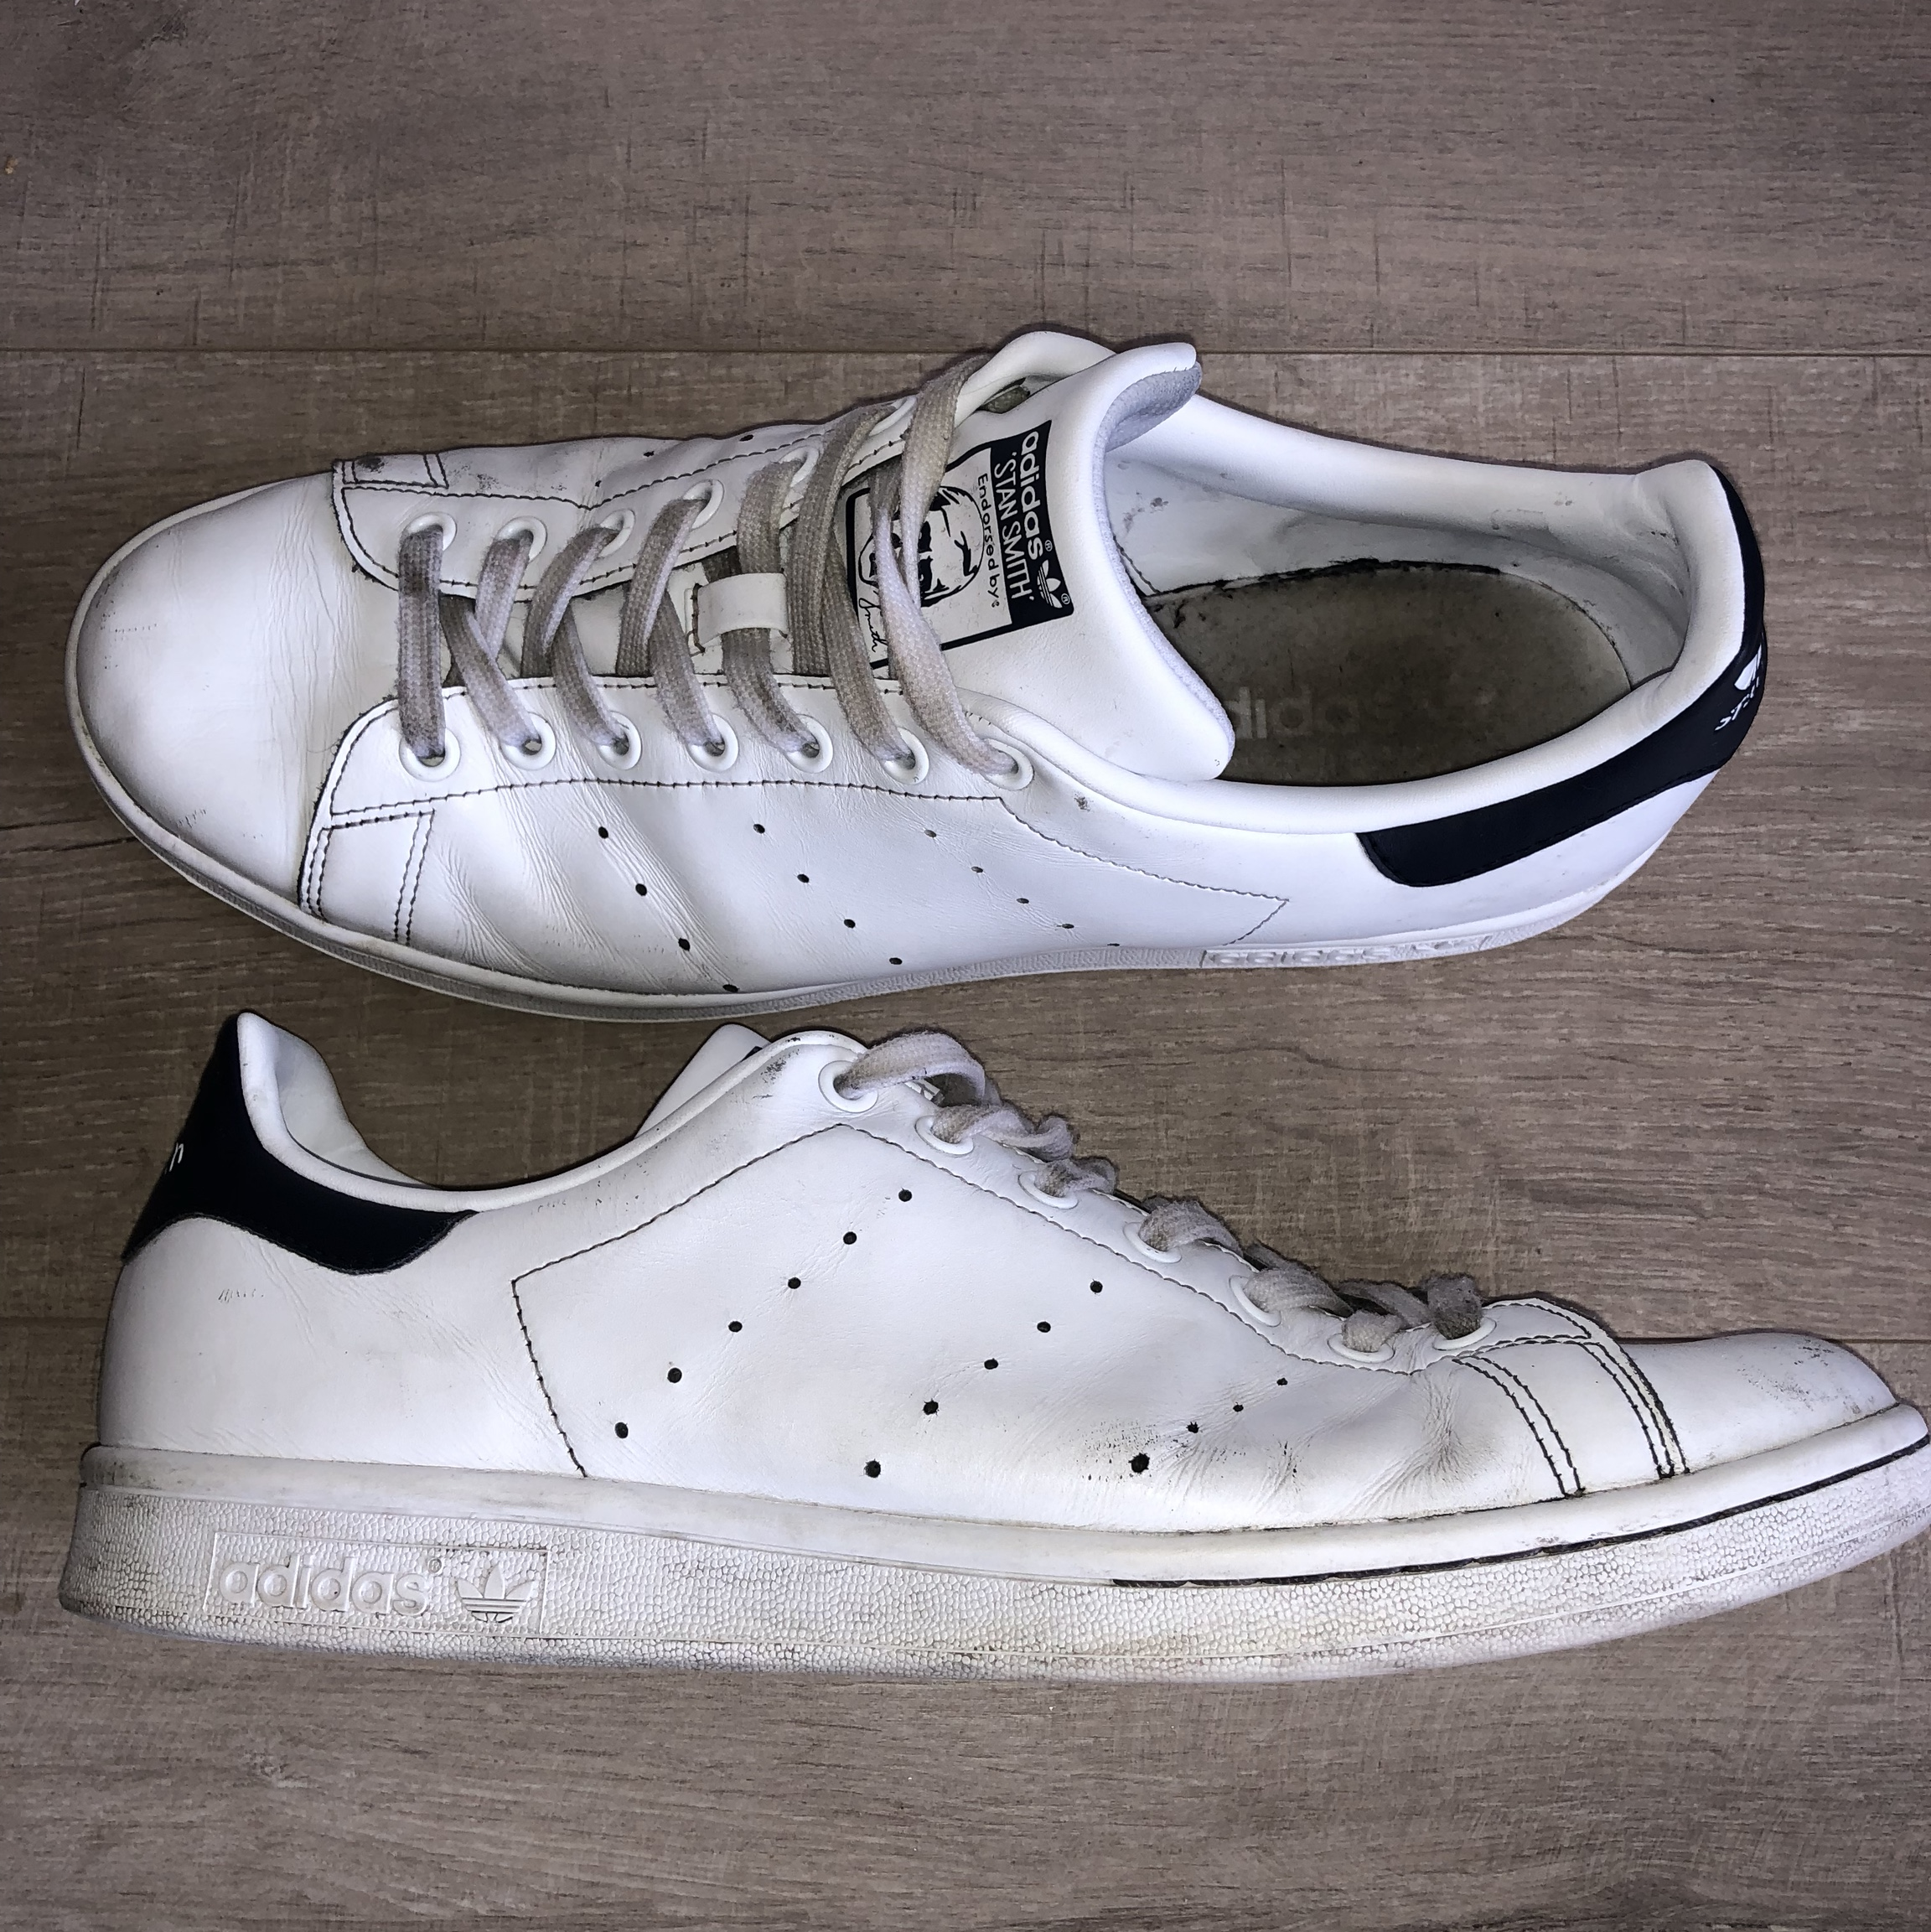 outlet store 86d12 4ac10 Adidas Stan Smith | UK 11 | Have been worn | 7/10... - Depop